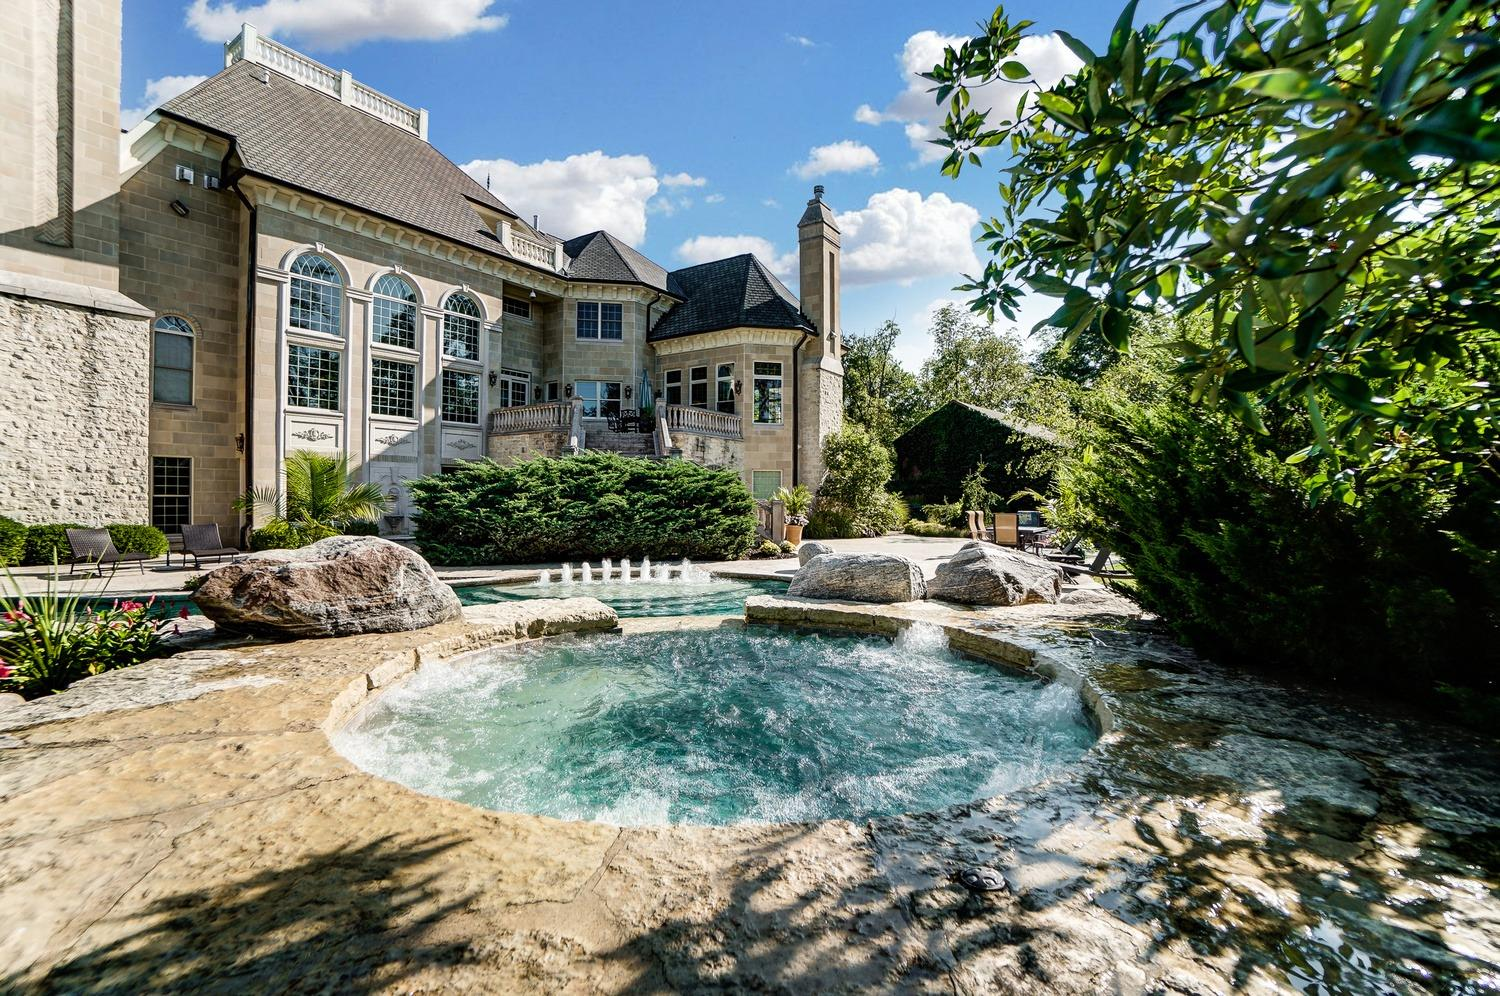 Water cascades from the hot tube to the heated Gunite pool.